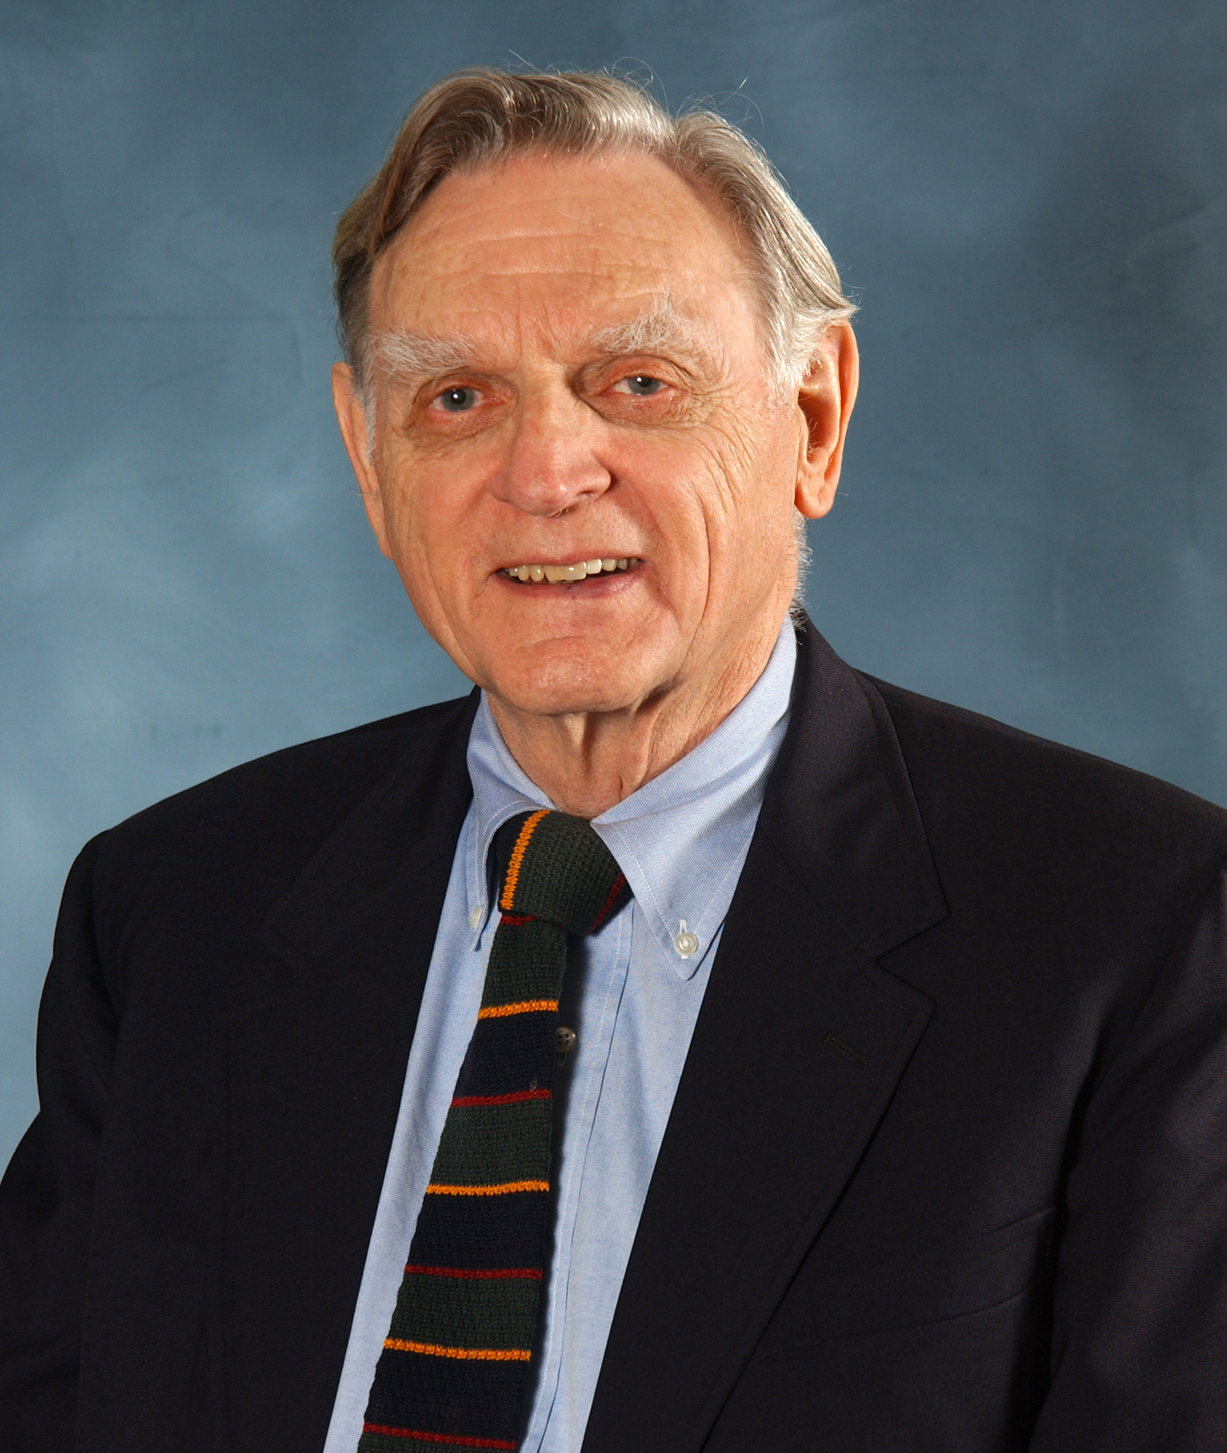 At 97, John B Goodenough has become the oldest person to receive a Nobel Prize. Photo courtesy: www.ece.utexas.edu